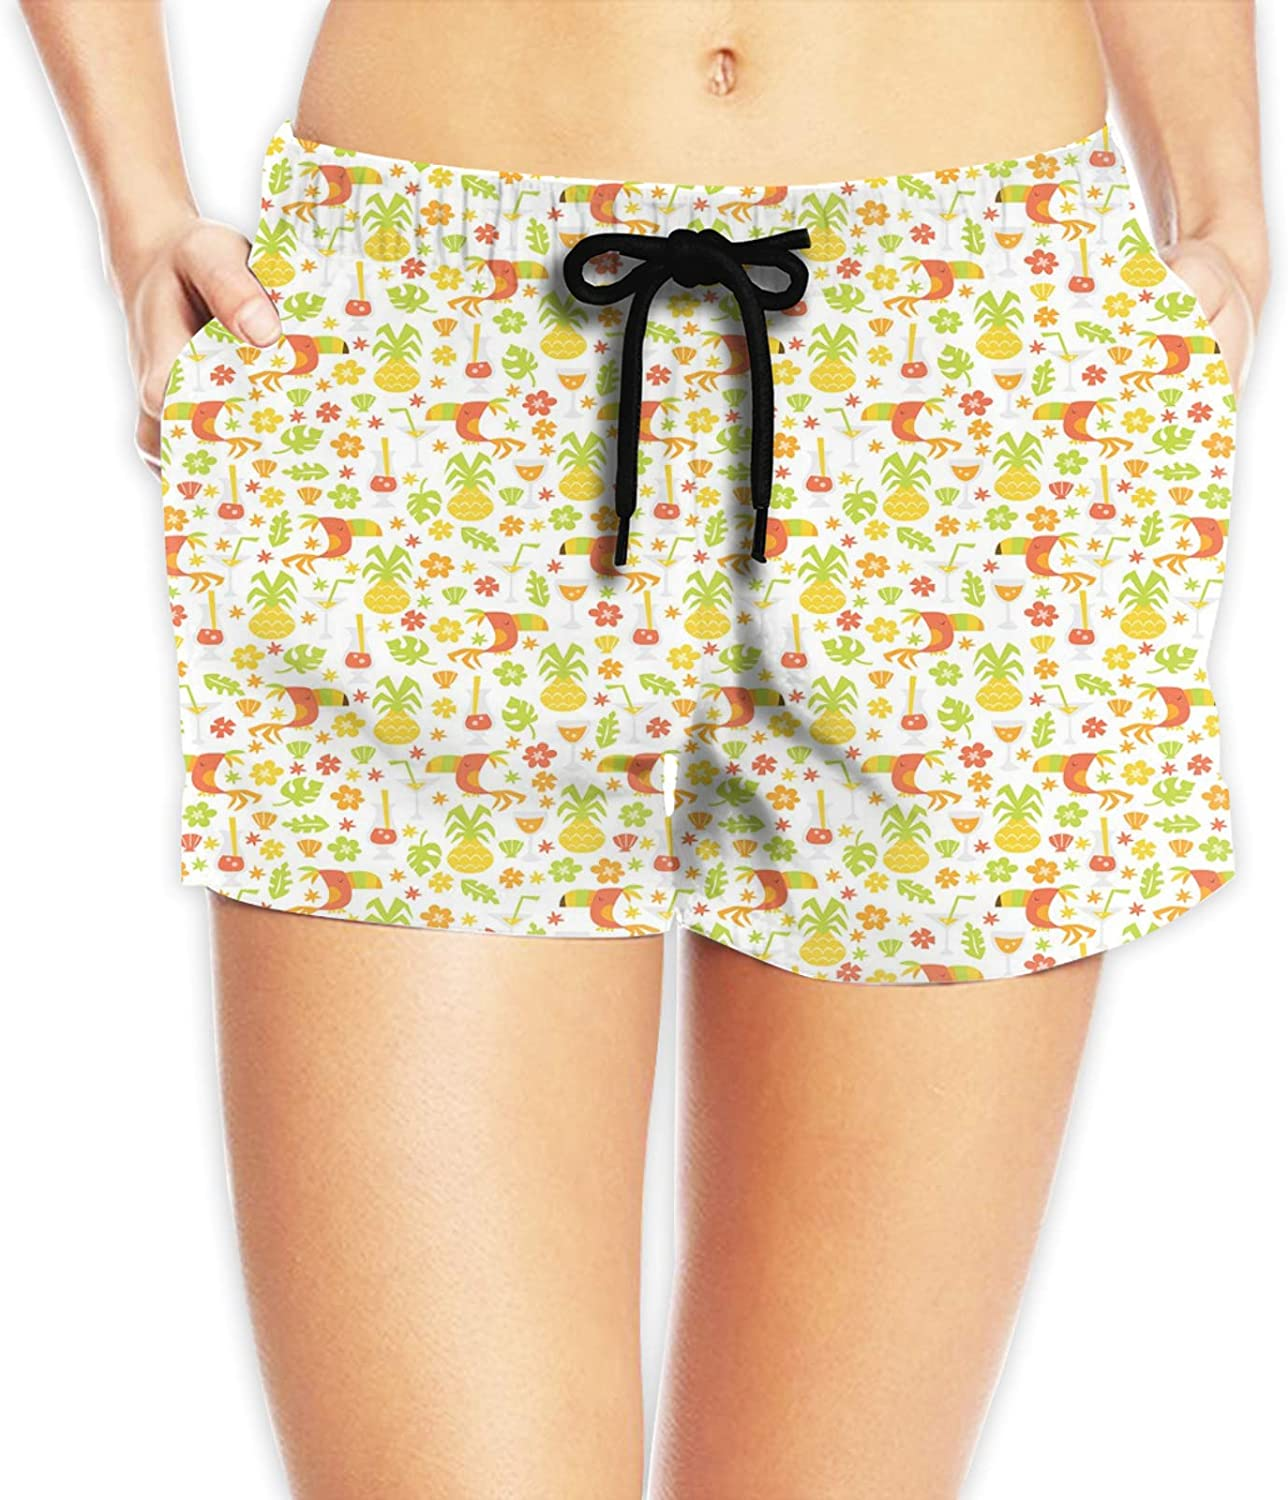 Women's Waistband Swimsuit Bottom Boy Shorts Swimming Panty,Tropical Birds and Trees Plants Leaves Flowers Nature Party Theme